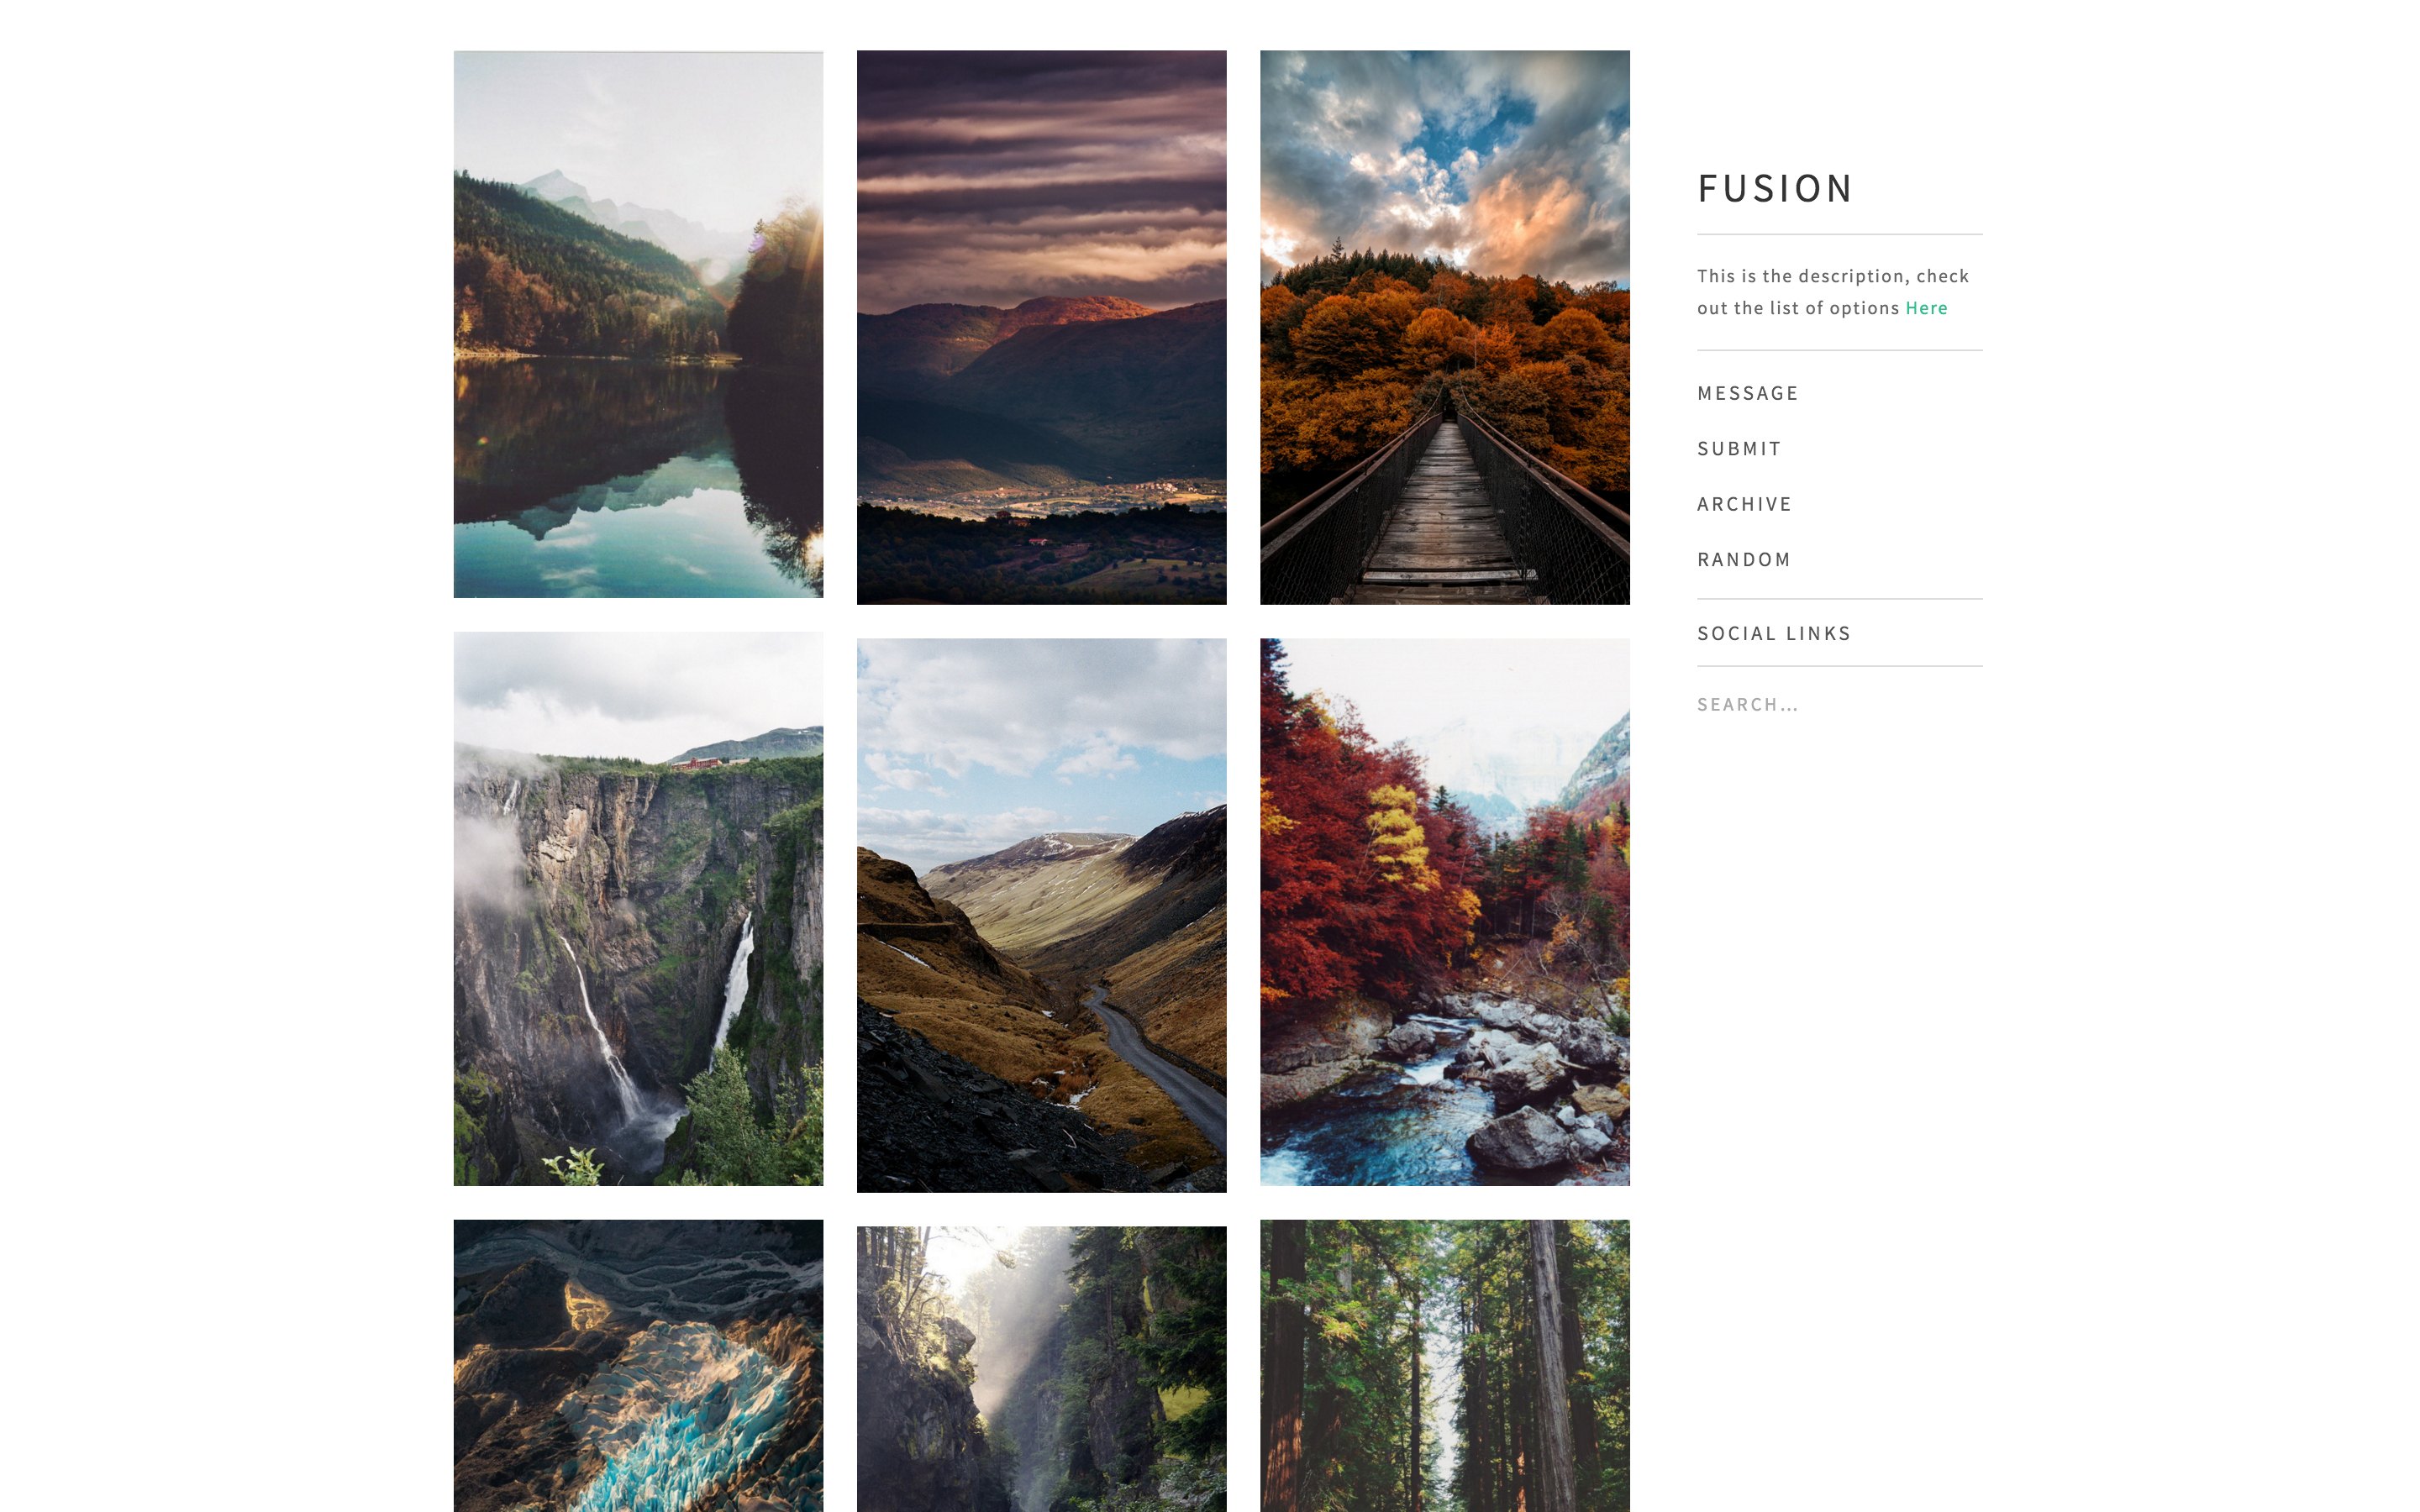 Tumblr theme Fusion - Minimalism meets Characteristic